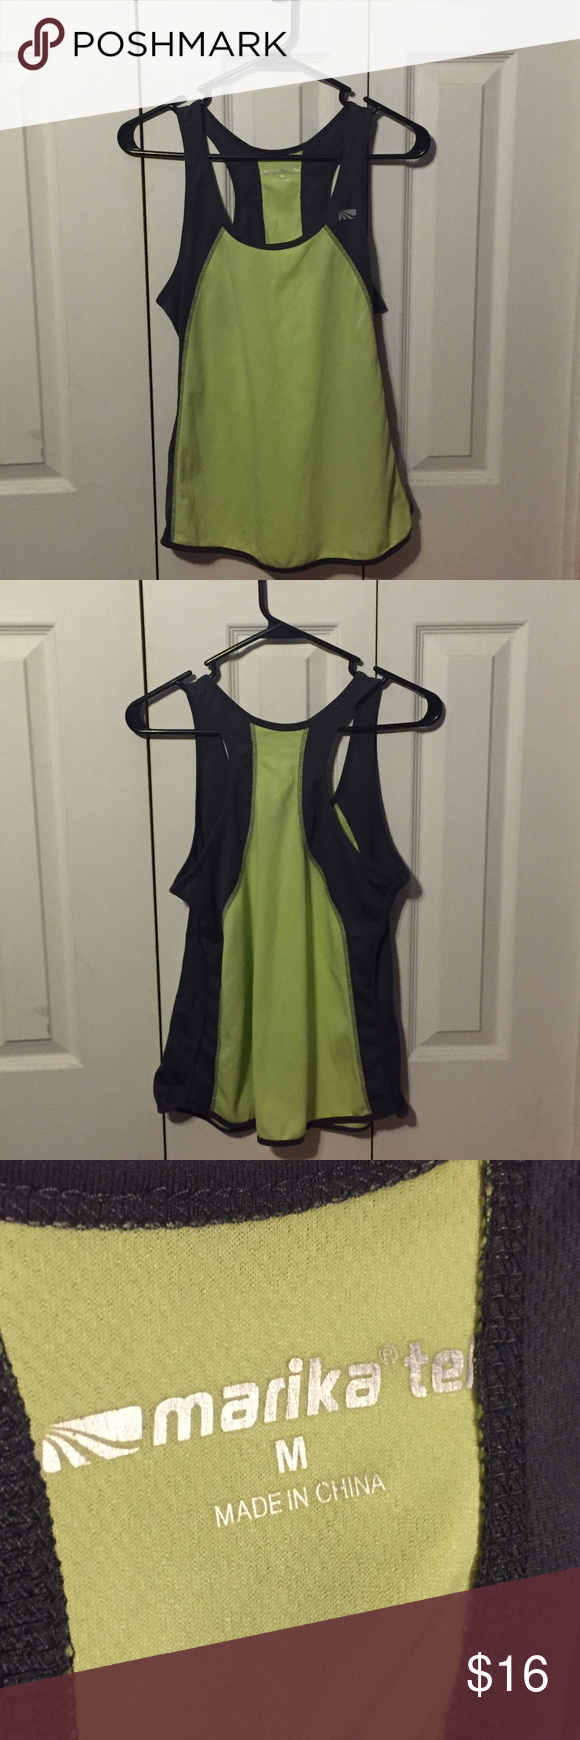 Marika Green and Gray Tank Top Marika Green and Gray Tank Top: Made in China; green and gray athletic tank top; breathable material; comfortable for sports or for free time; hardly worn!! Marika Tops Tank Tops